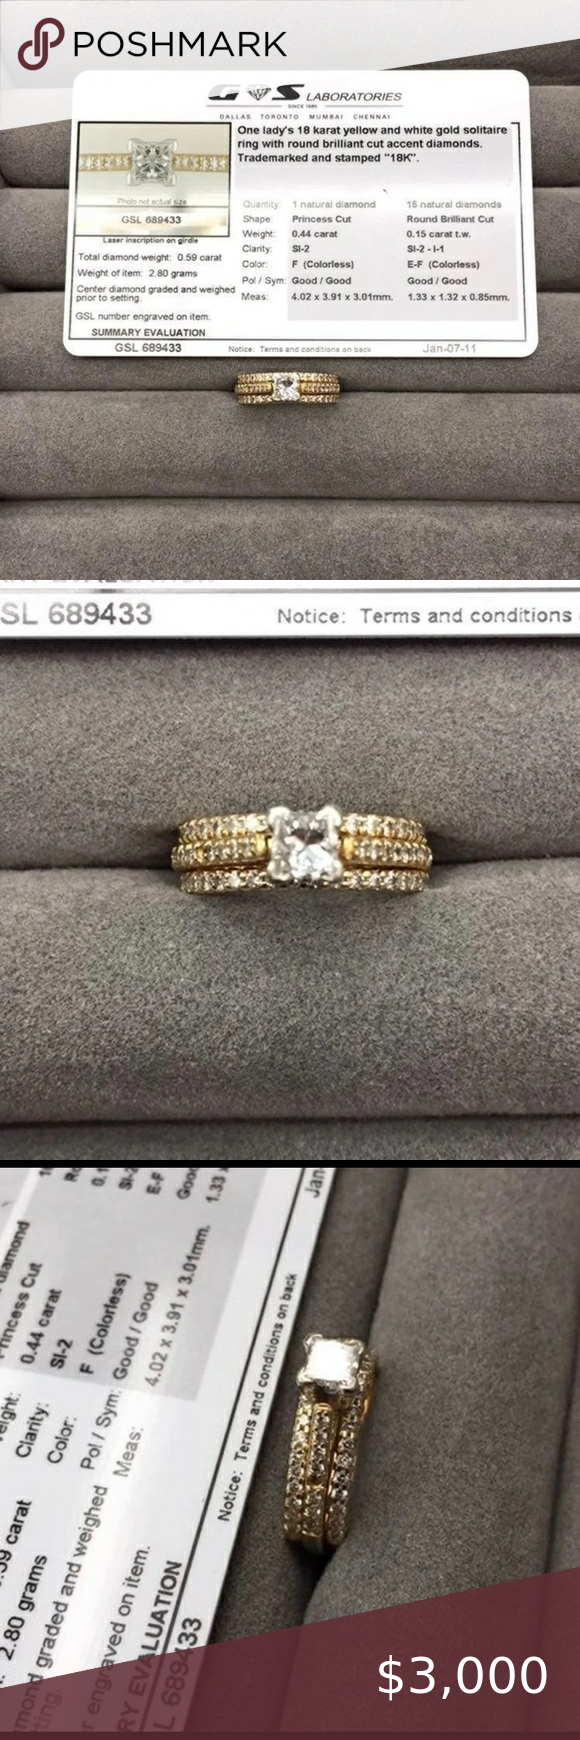 26++ Phone number for zales jewelry information